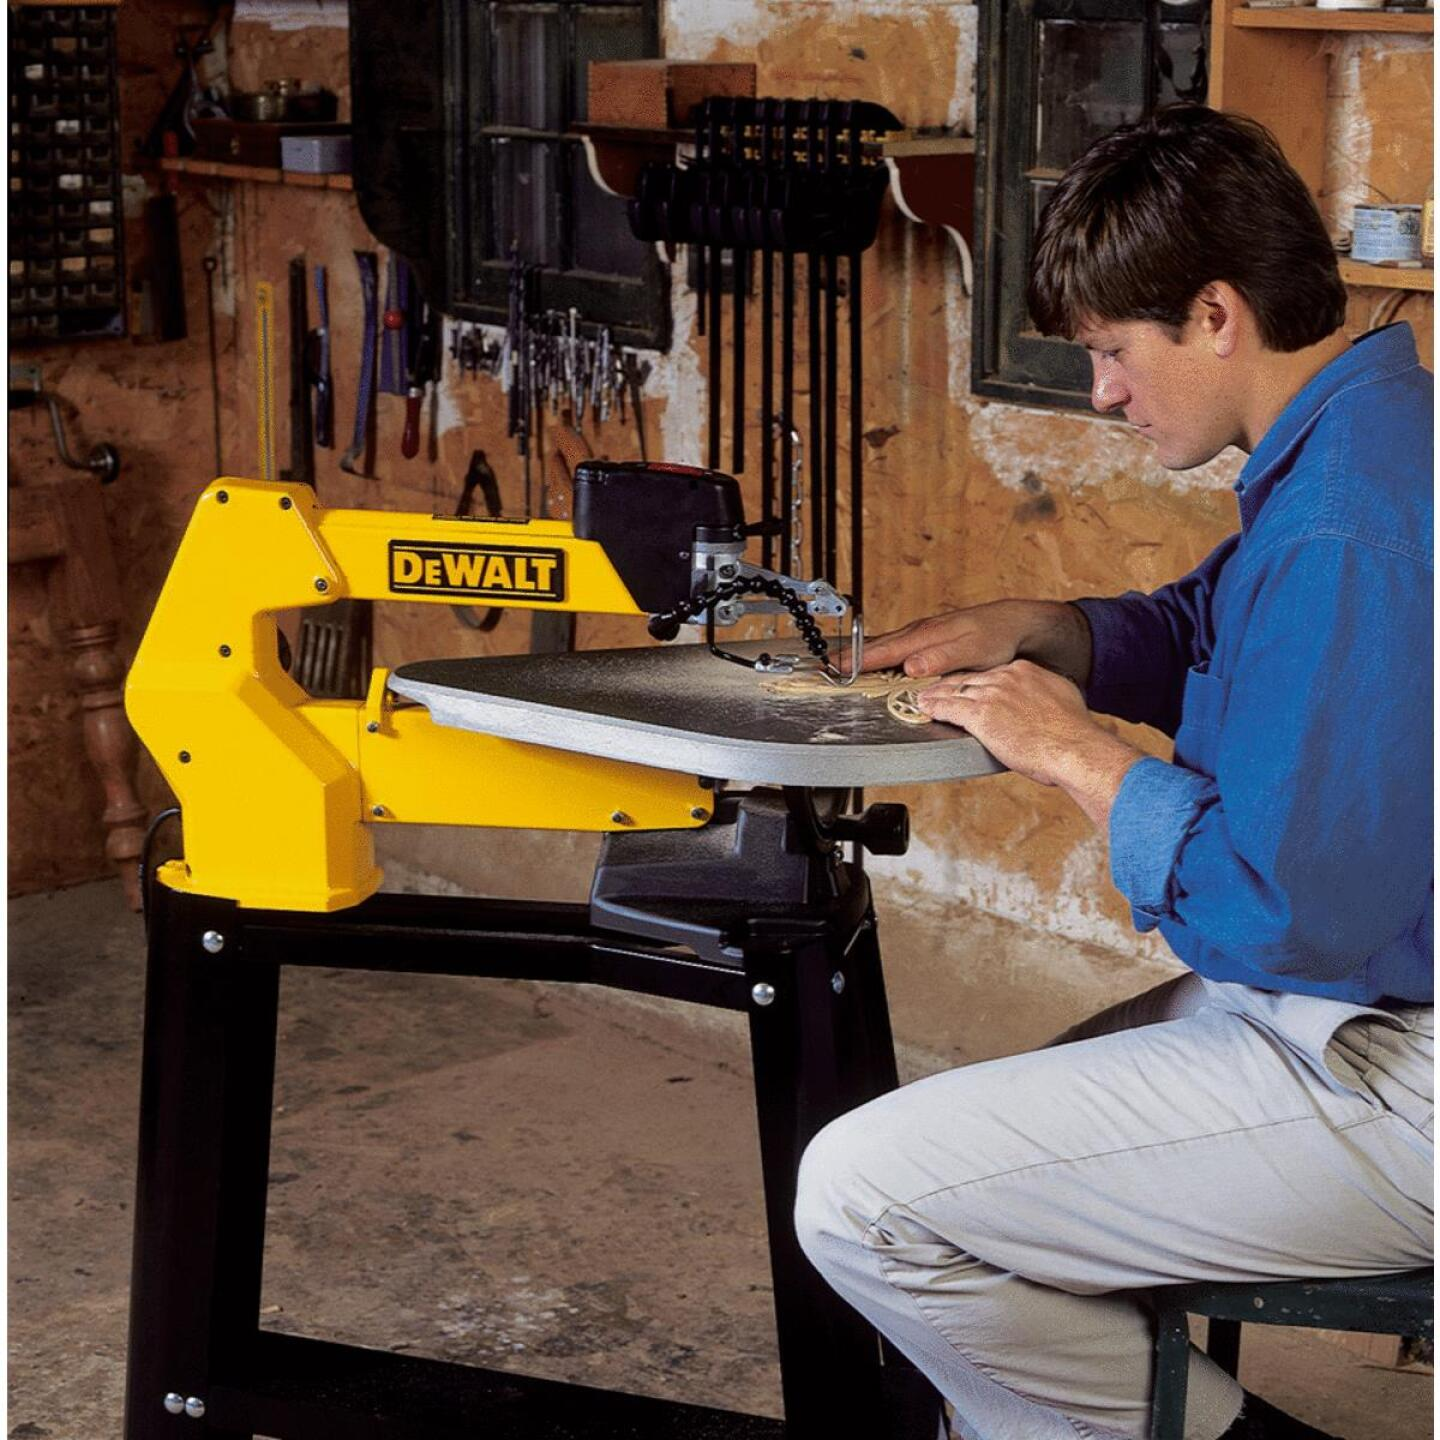 DeWalt 20 In. Scroll Saw Image 2